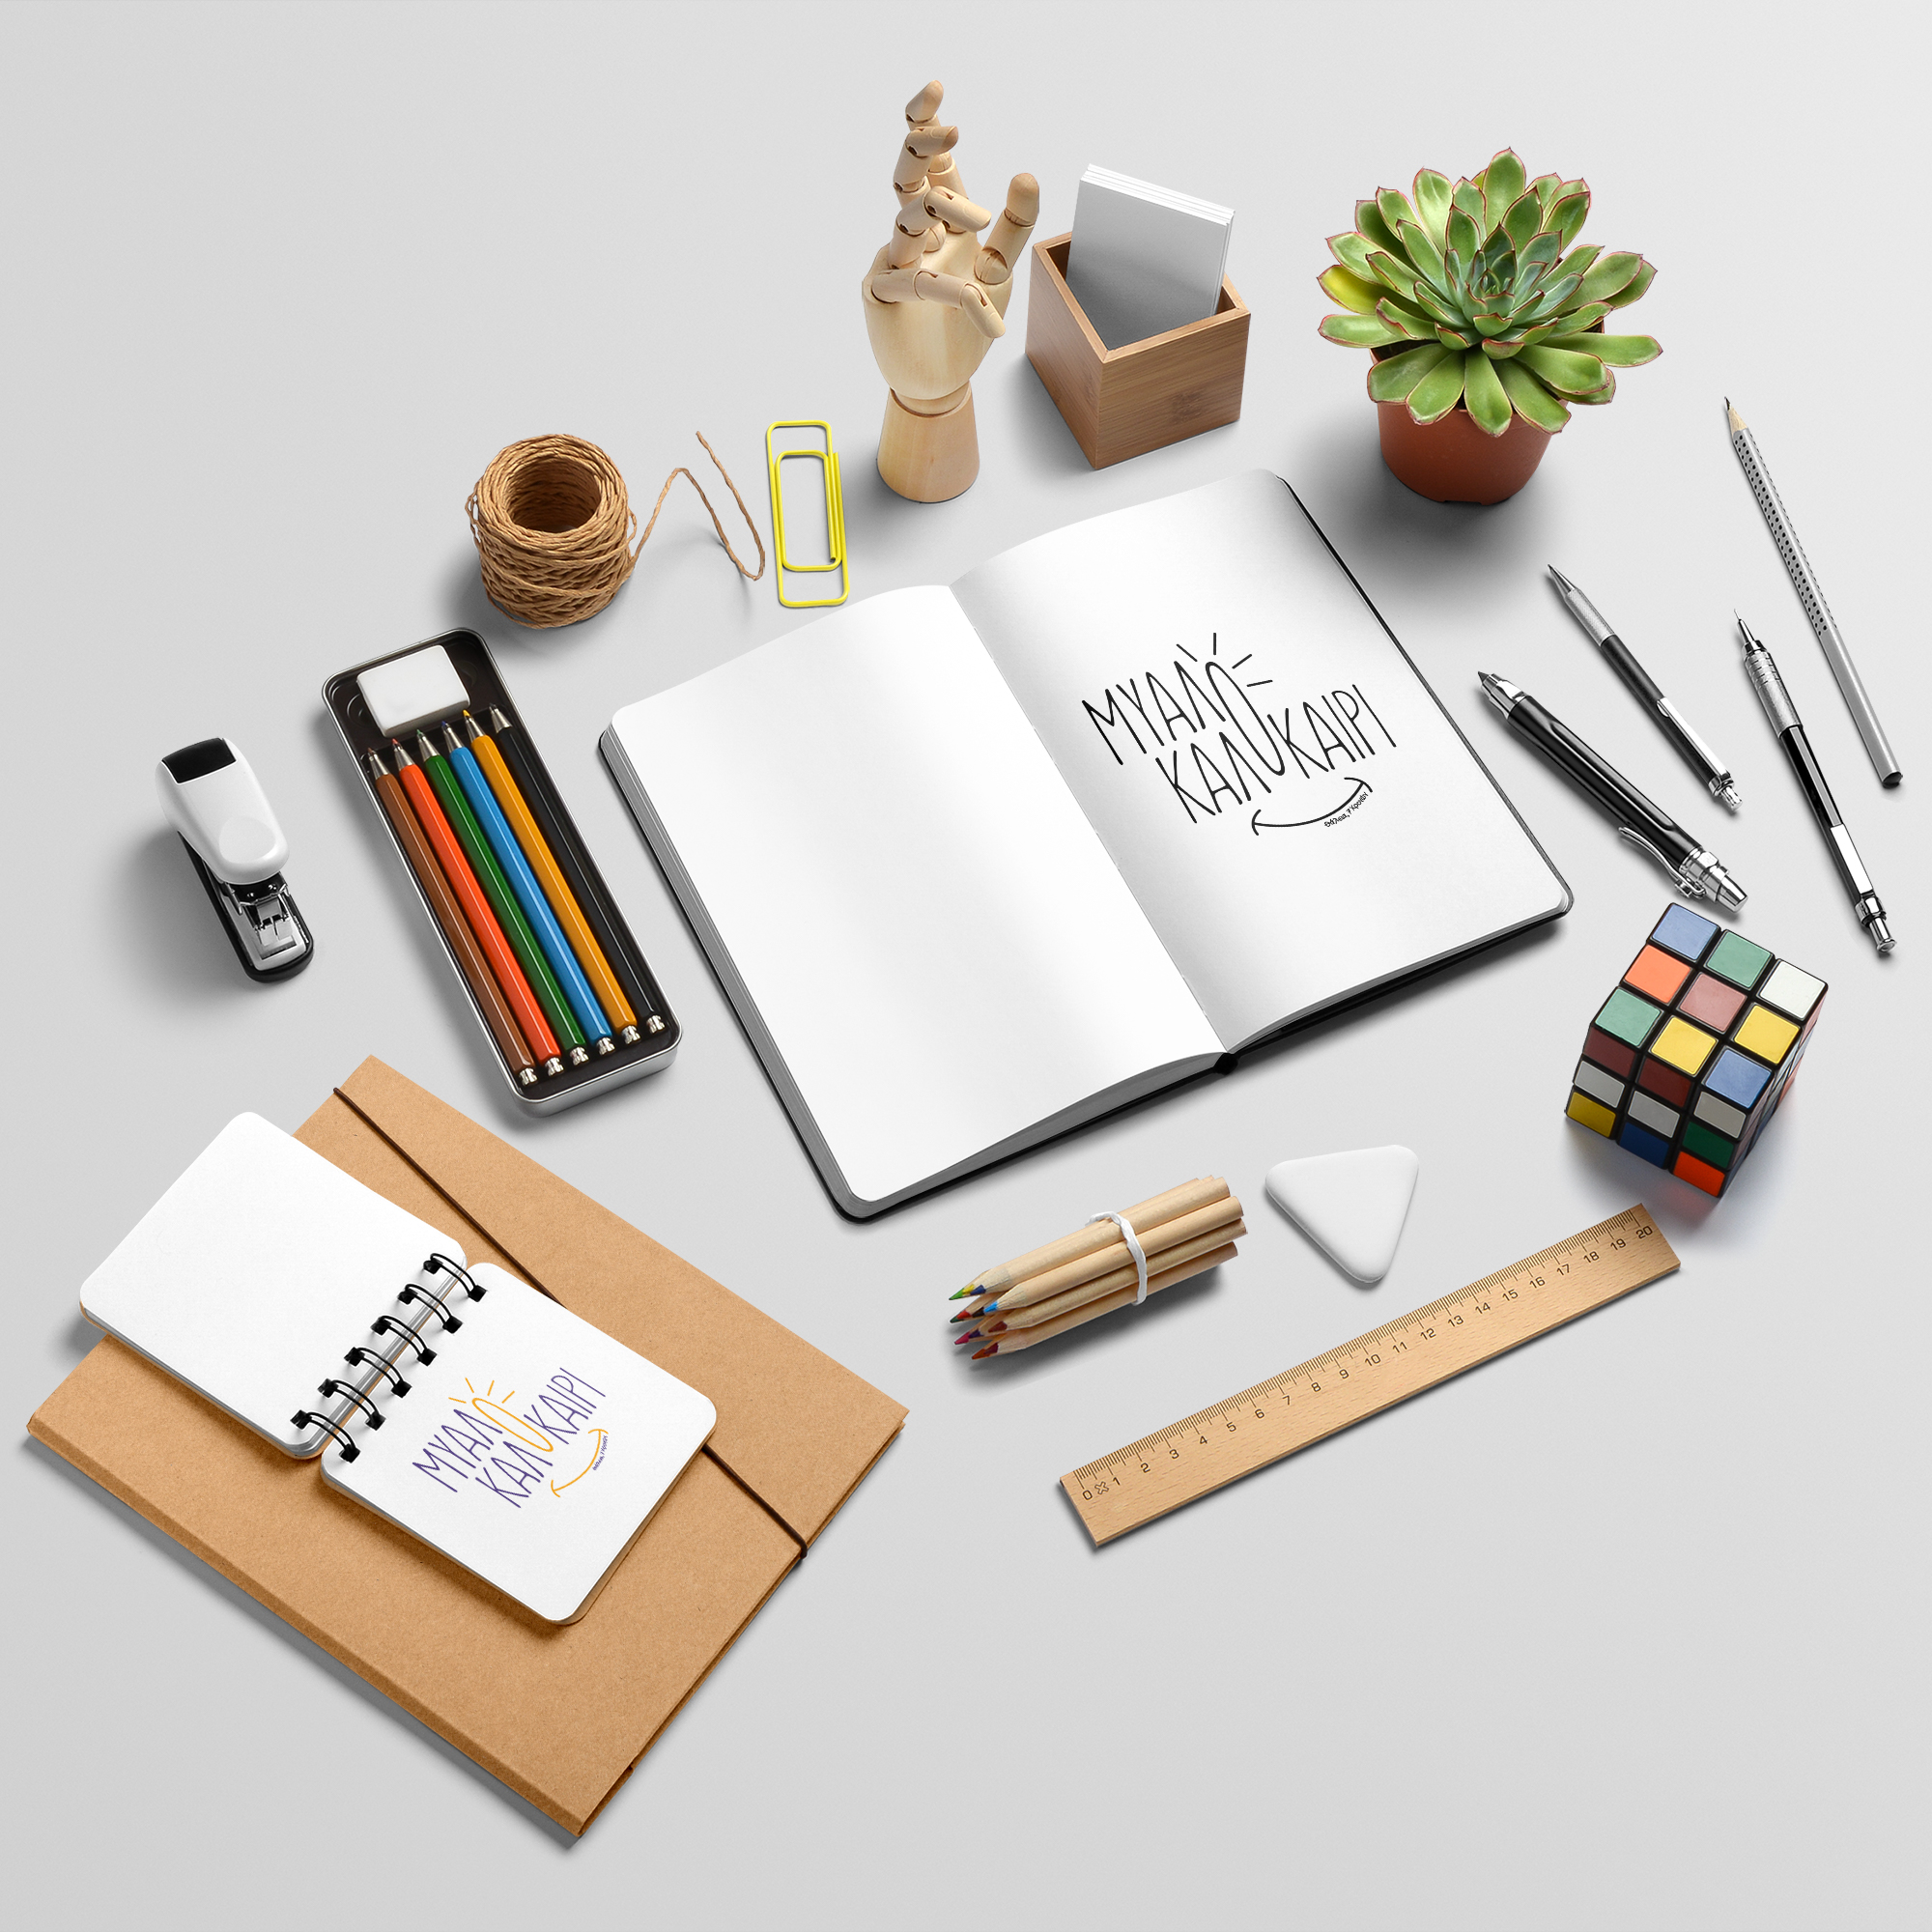 Myalo Kalokairi design in two notepads and several stationery items